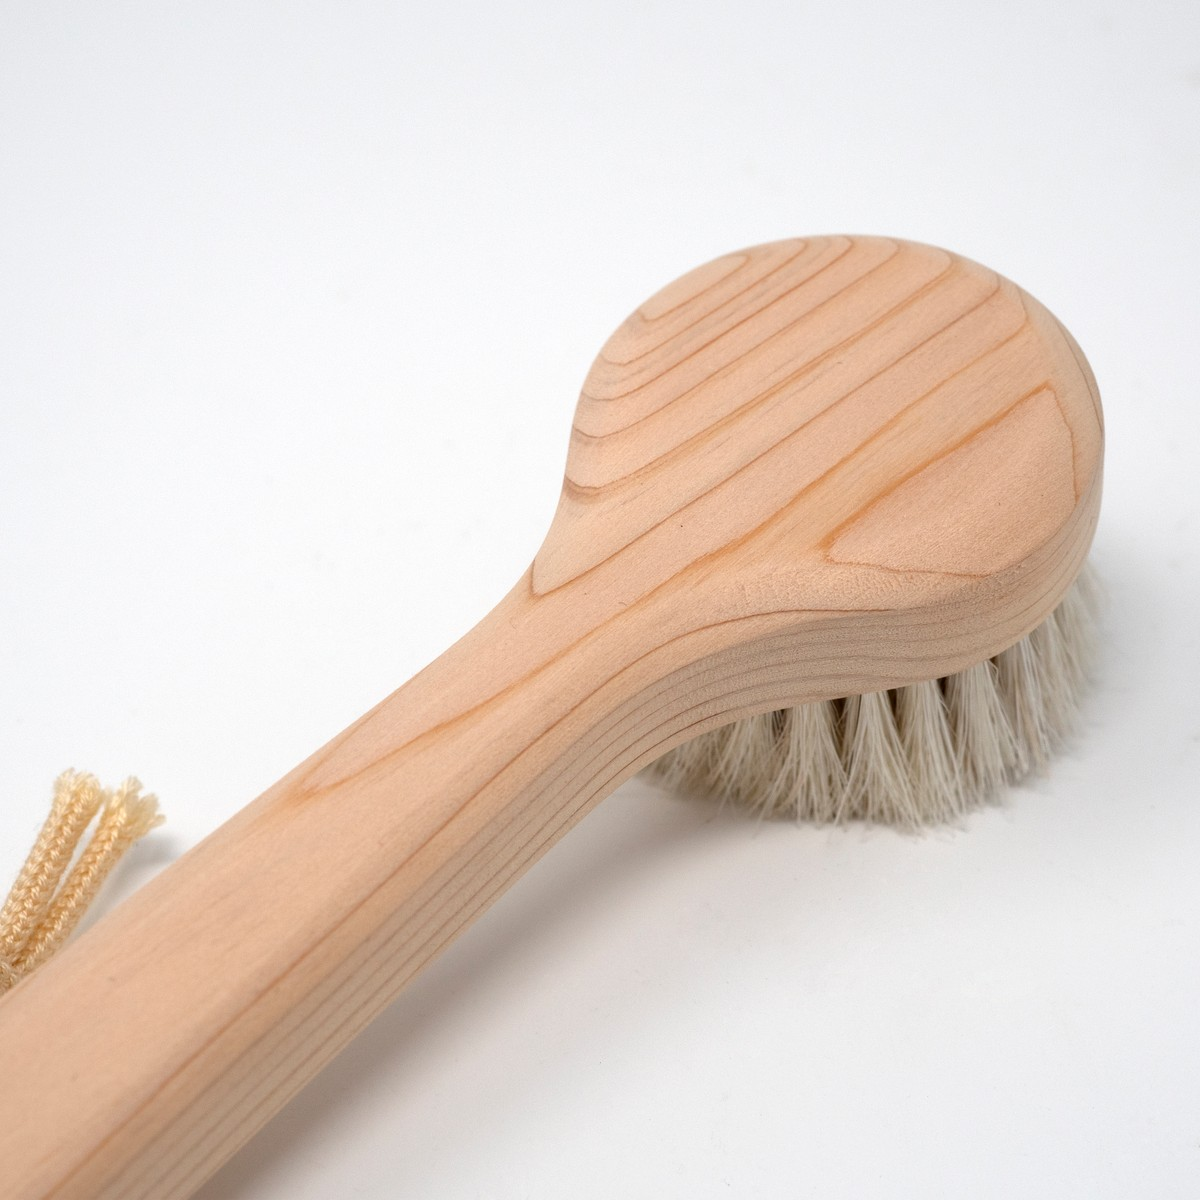 Photo of Japanese Face Brush